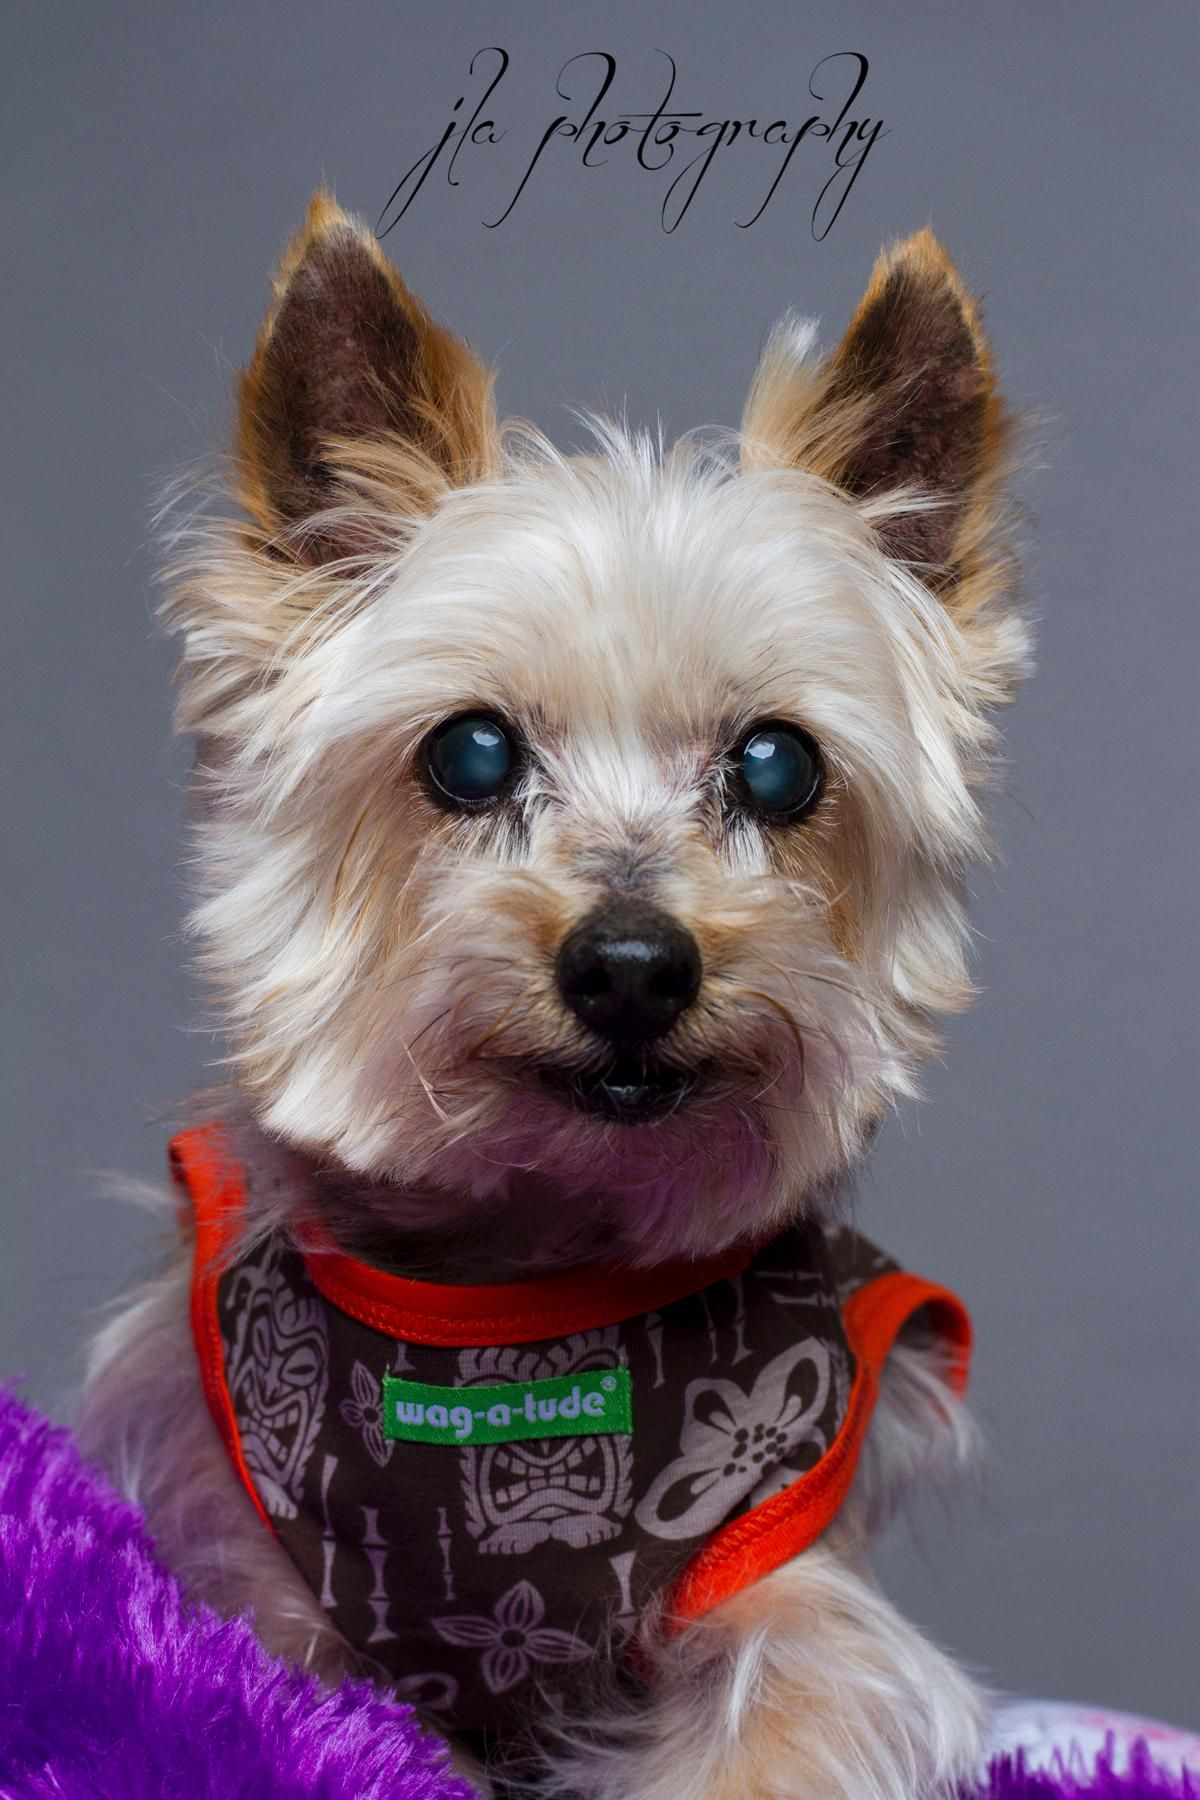 Spanky is an adoptable Yorkshire Terrier Yorkie searching